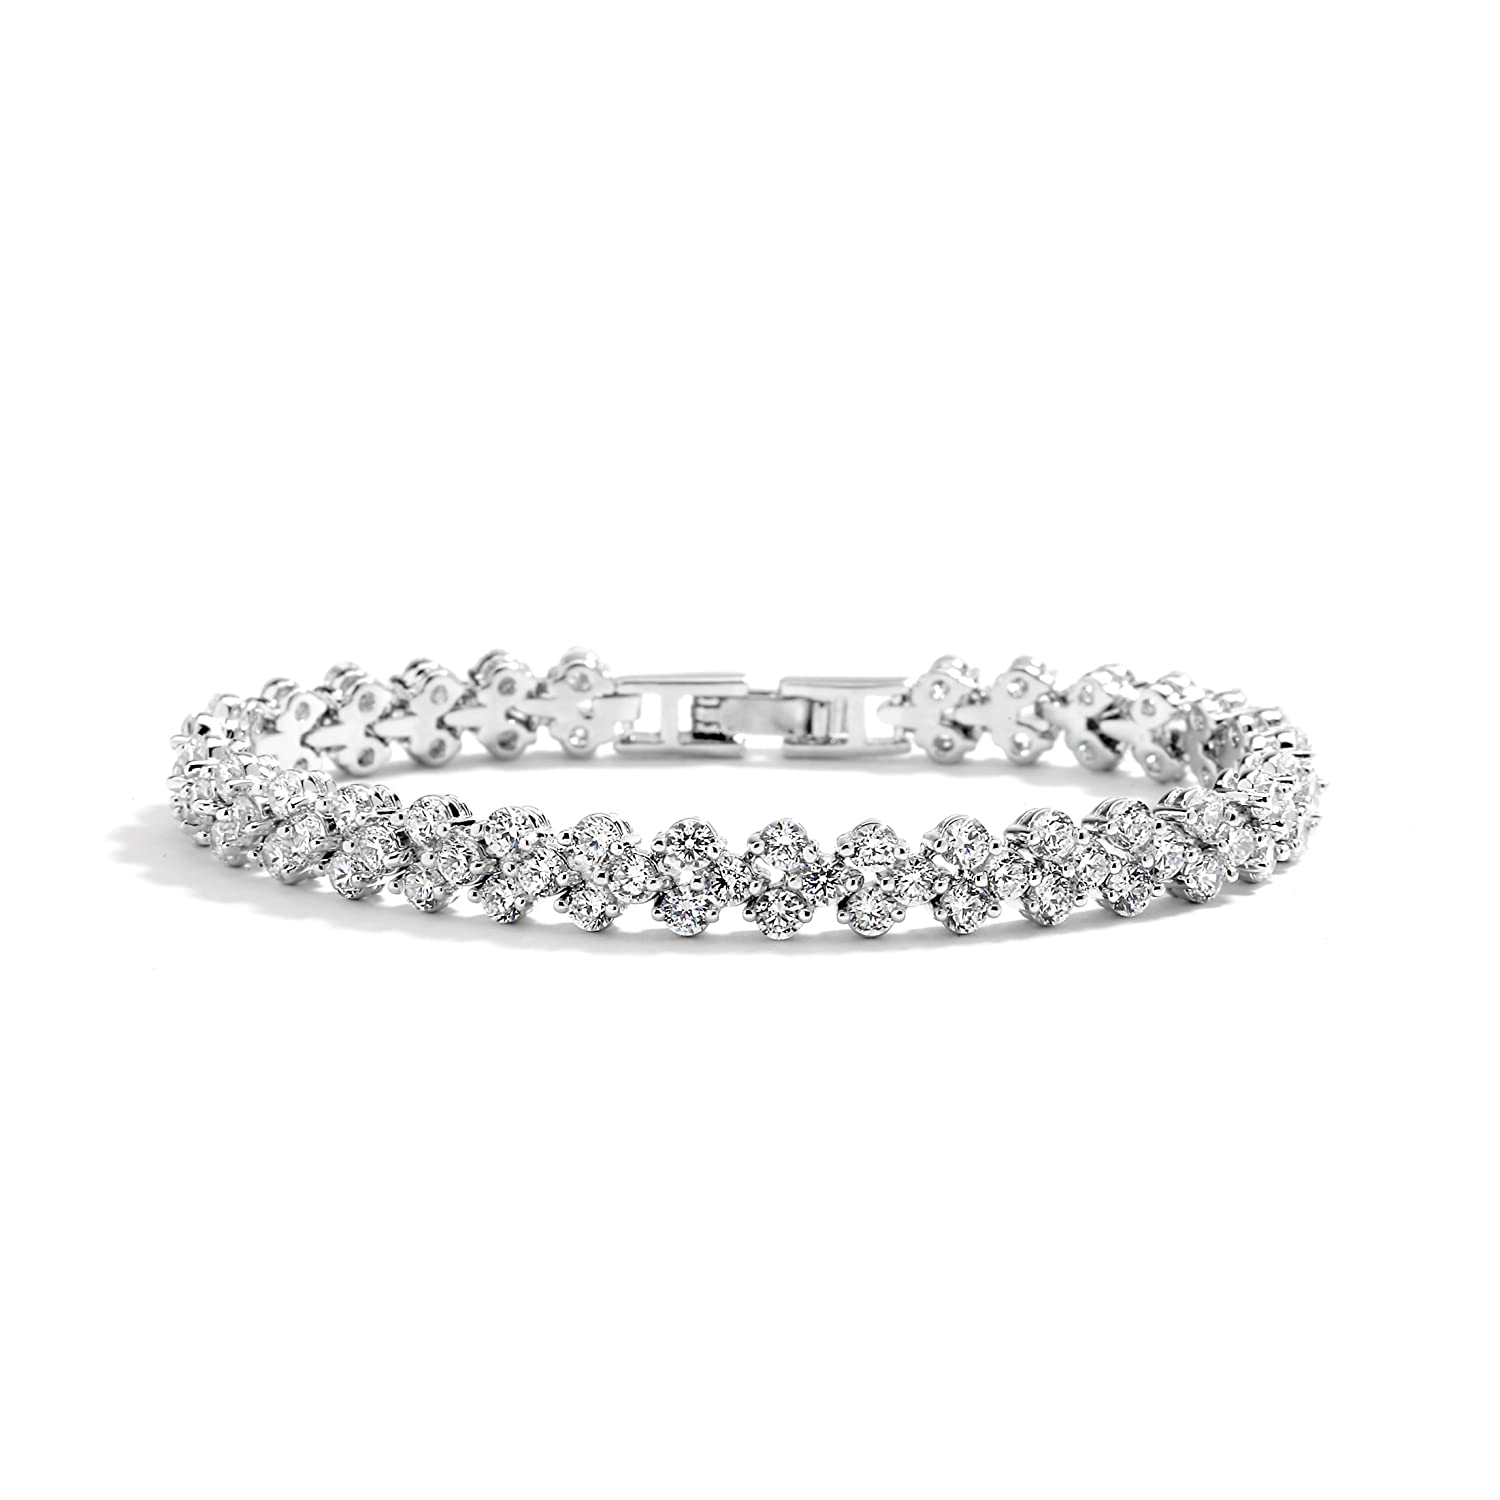 Mariell Rhodium Cubic Zirconia Wedding or Prom Tennis Bracelet for Bridal or Everyday Wear! 4109B-S-7